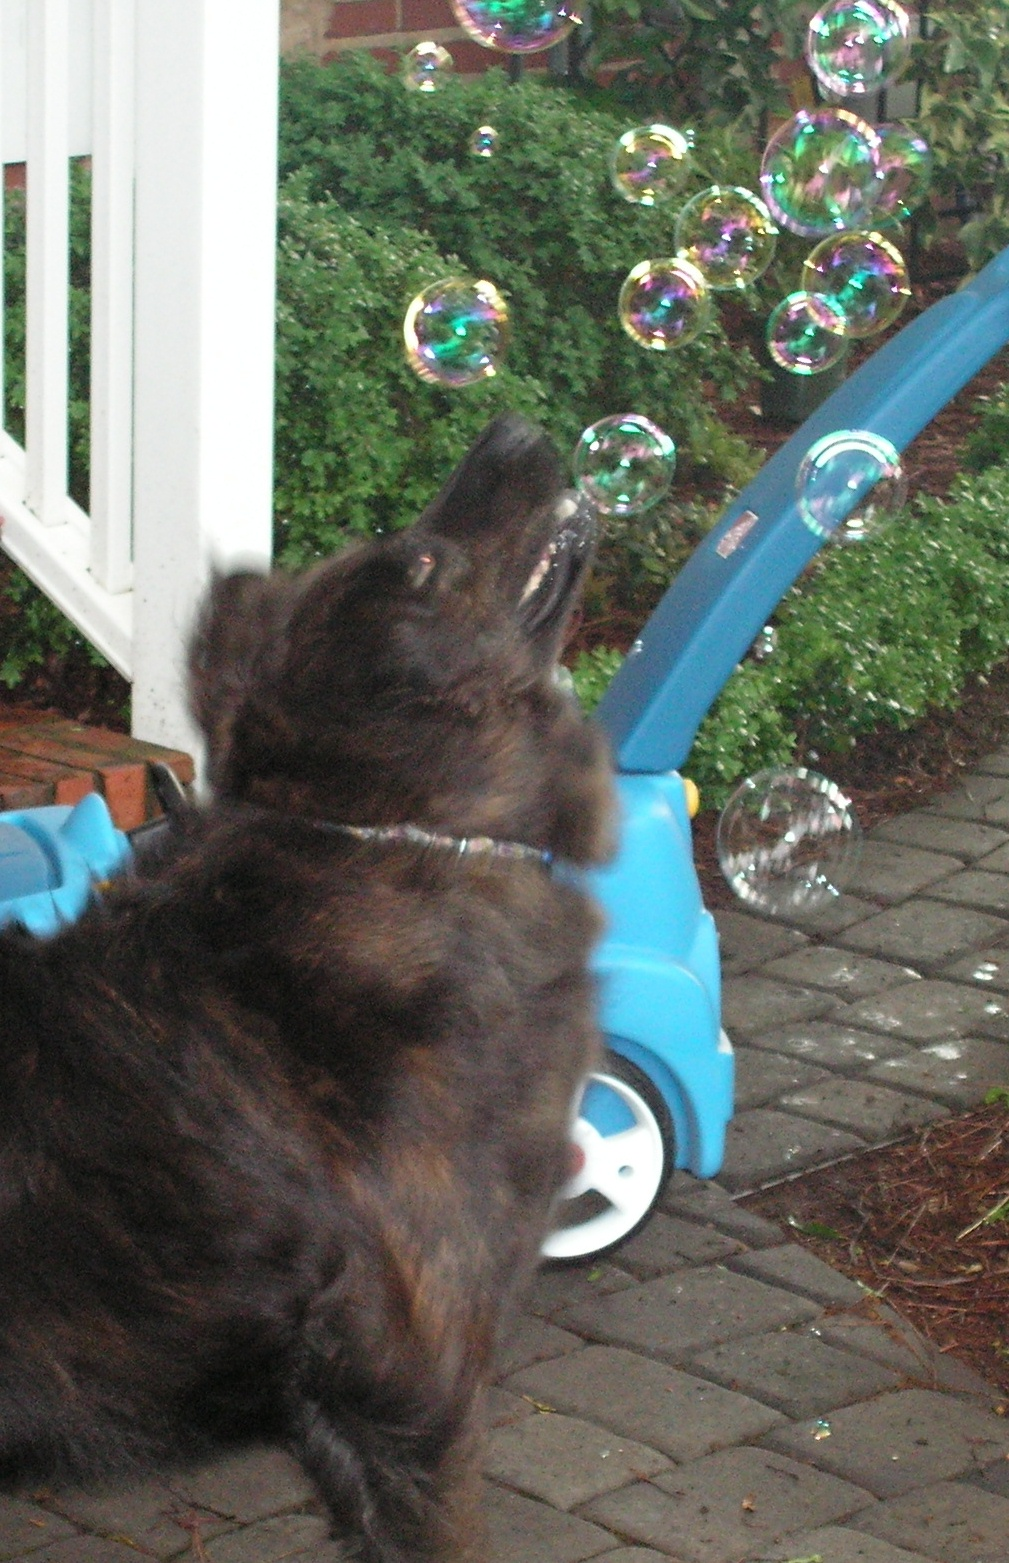 Lola washing her own mouth out with soap bubbles